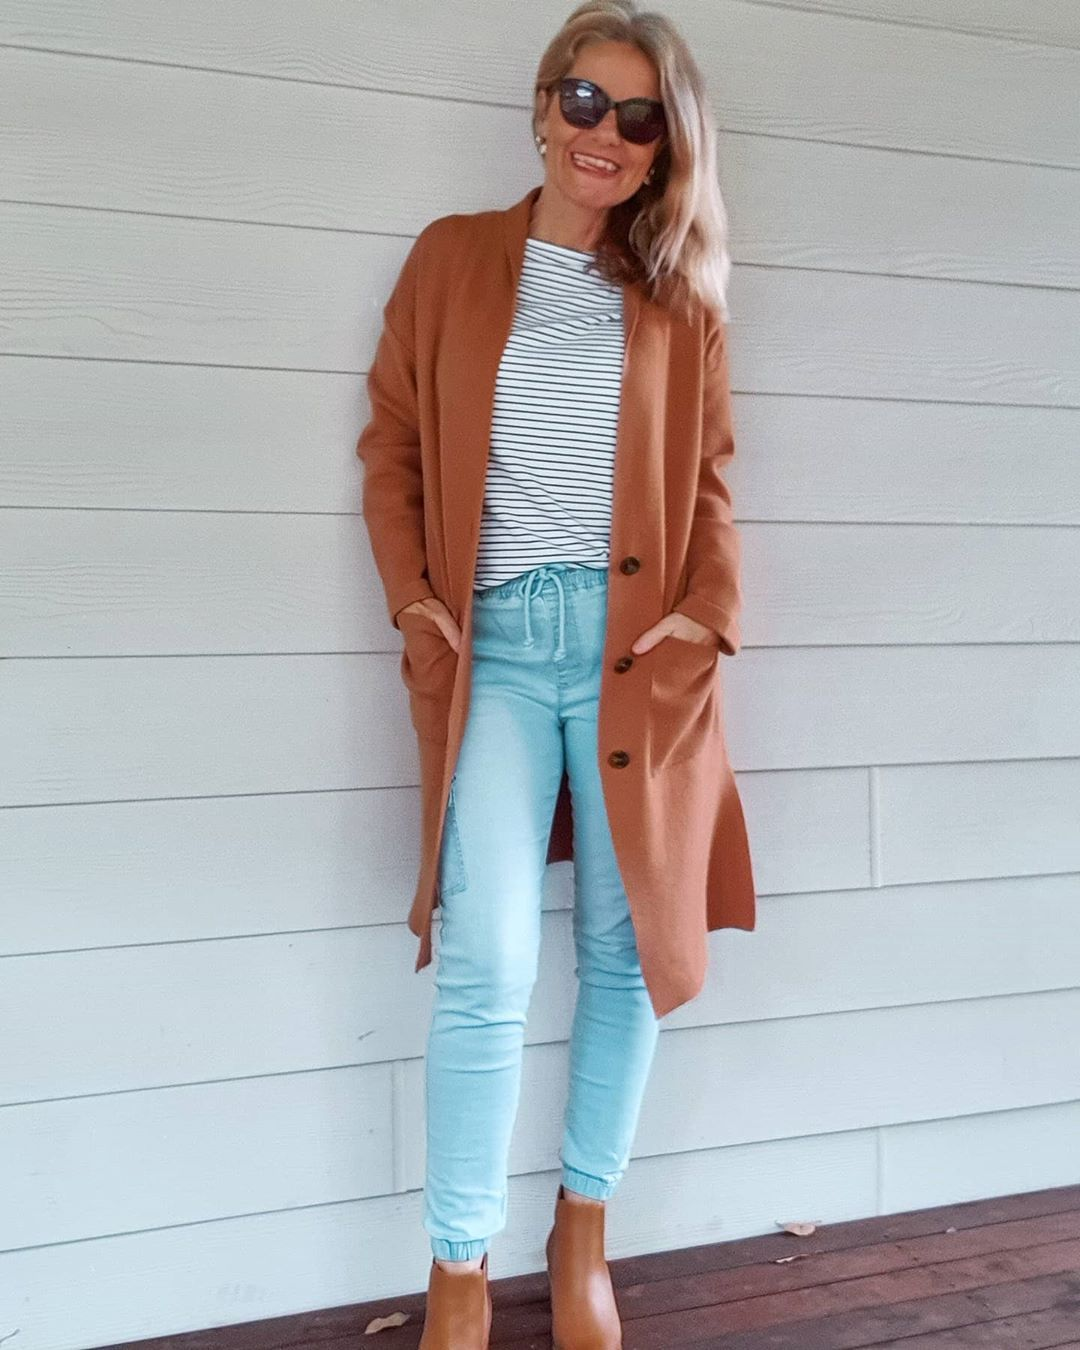 Cardigan, tee, jeans and booties | For more style inspiration visit 40plusstyle.com